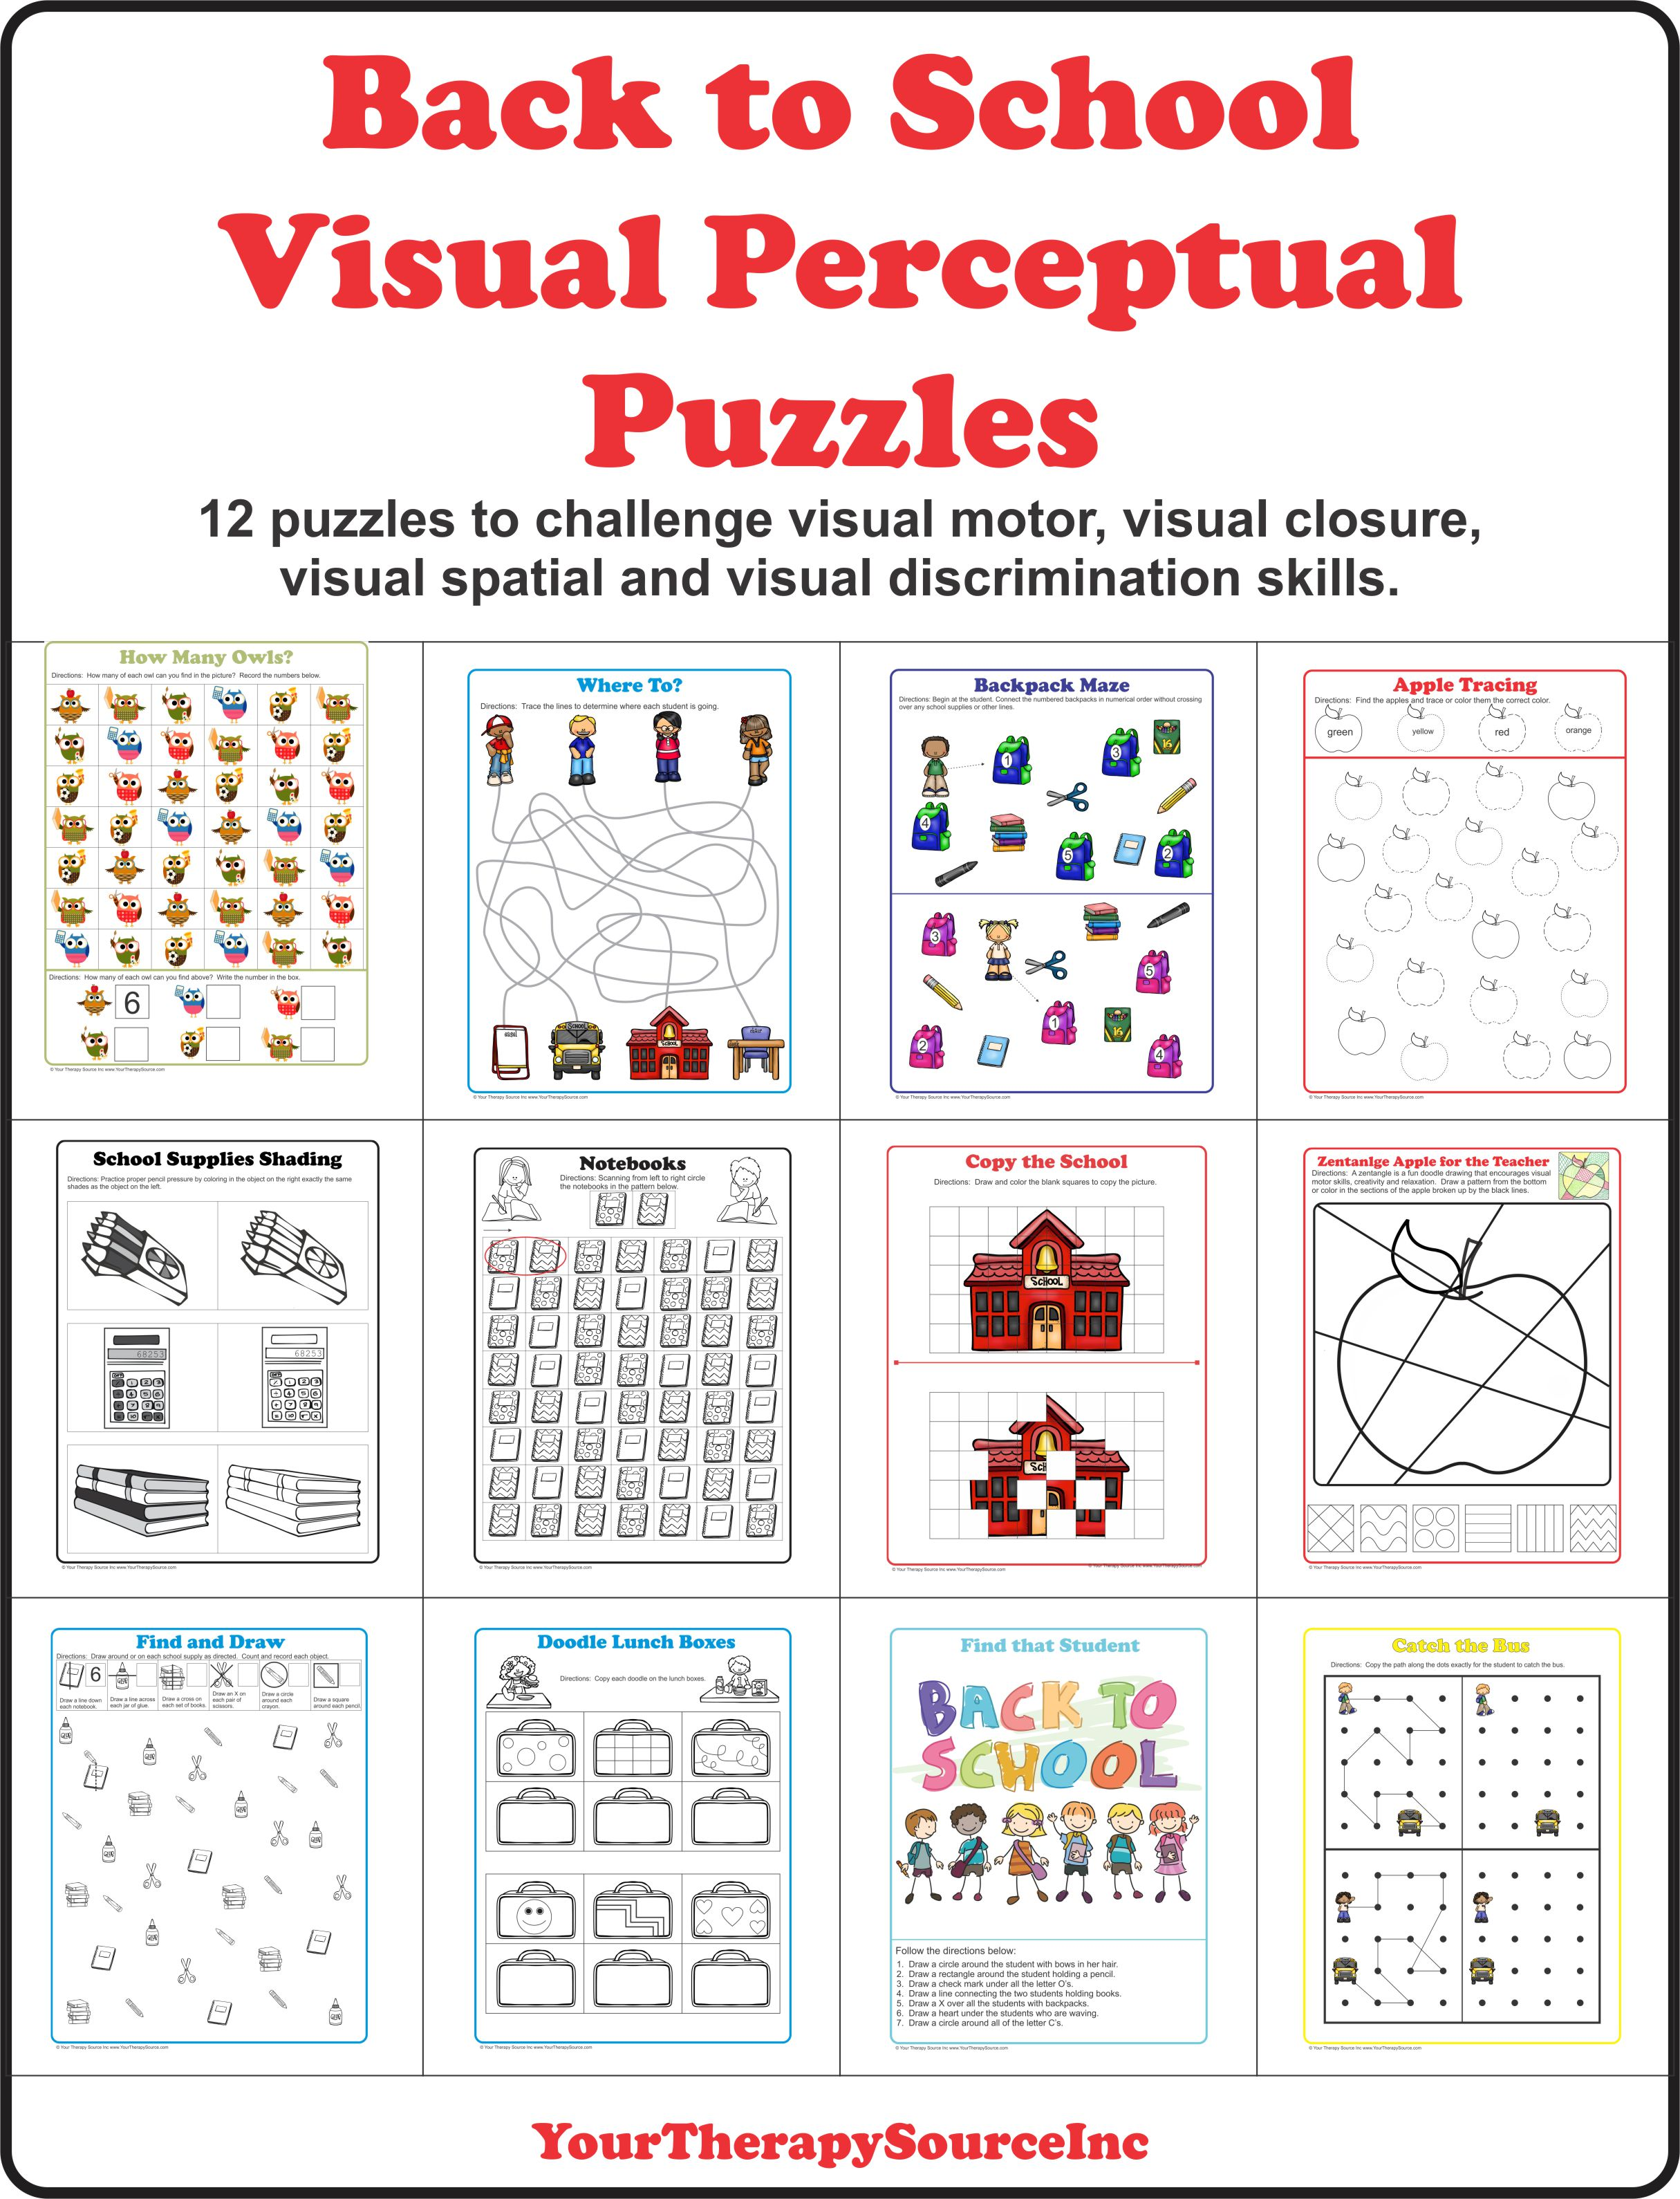 Back To School Visual Perceptual Puzzles